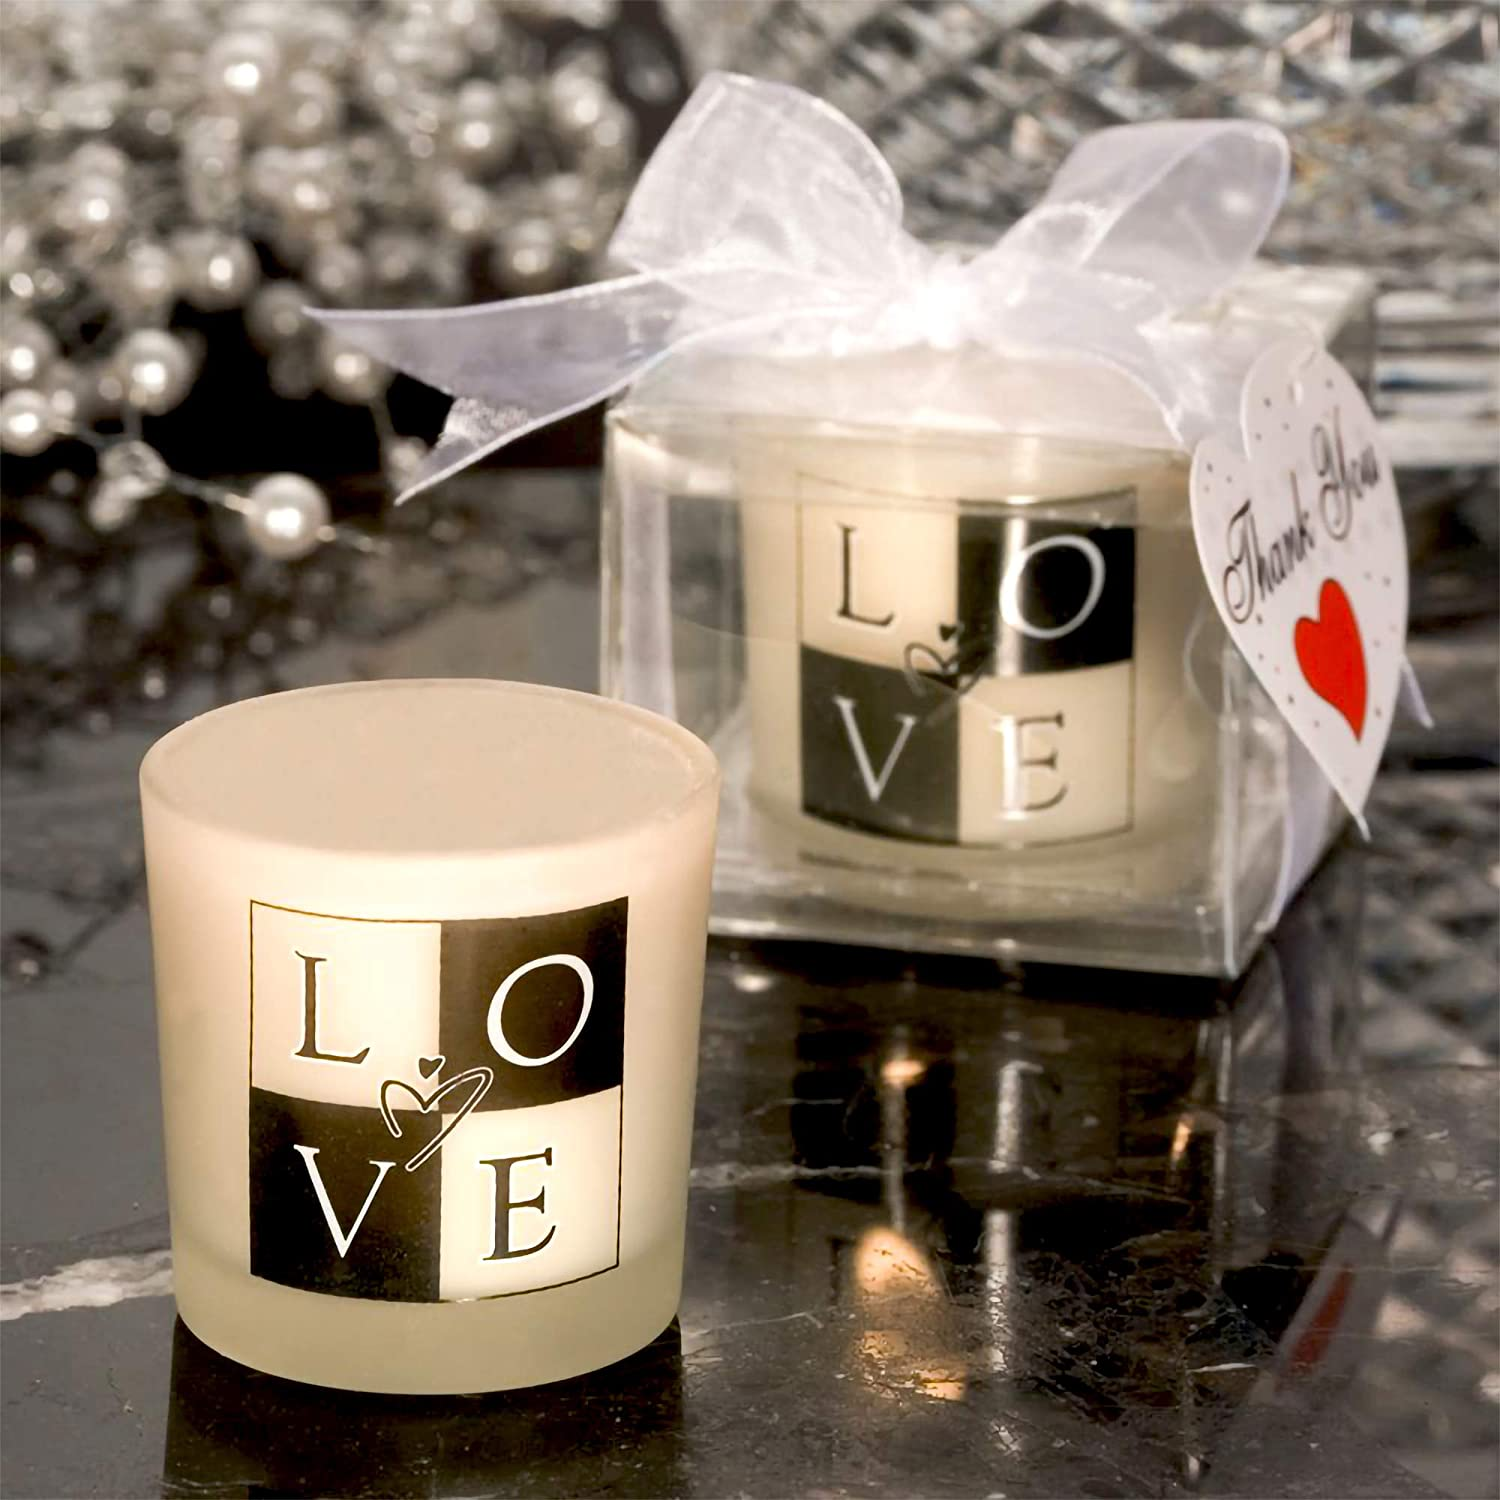 Pack of 24 for Wedding Favors Centerpieces /& Home Decor Black and White Design With Tealight Candle Baby Shower Fashioncraft LOVE Glass Votive Candle Holder Frosted